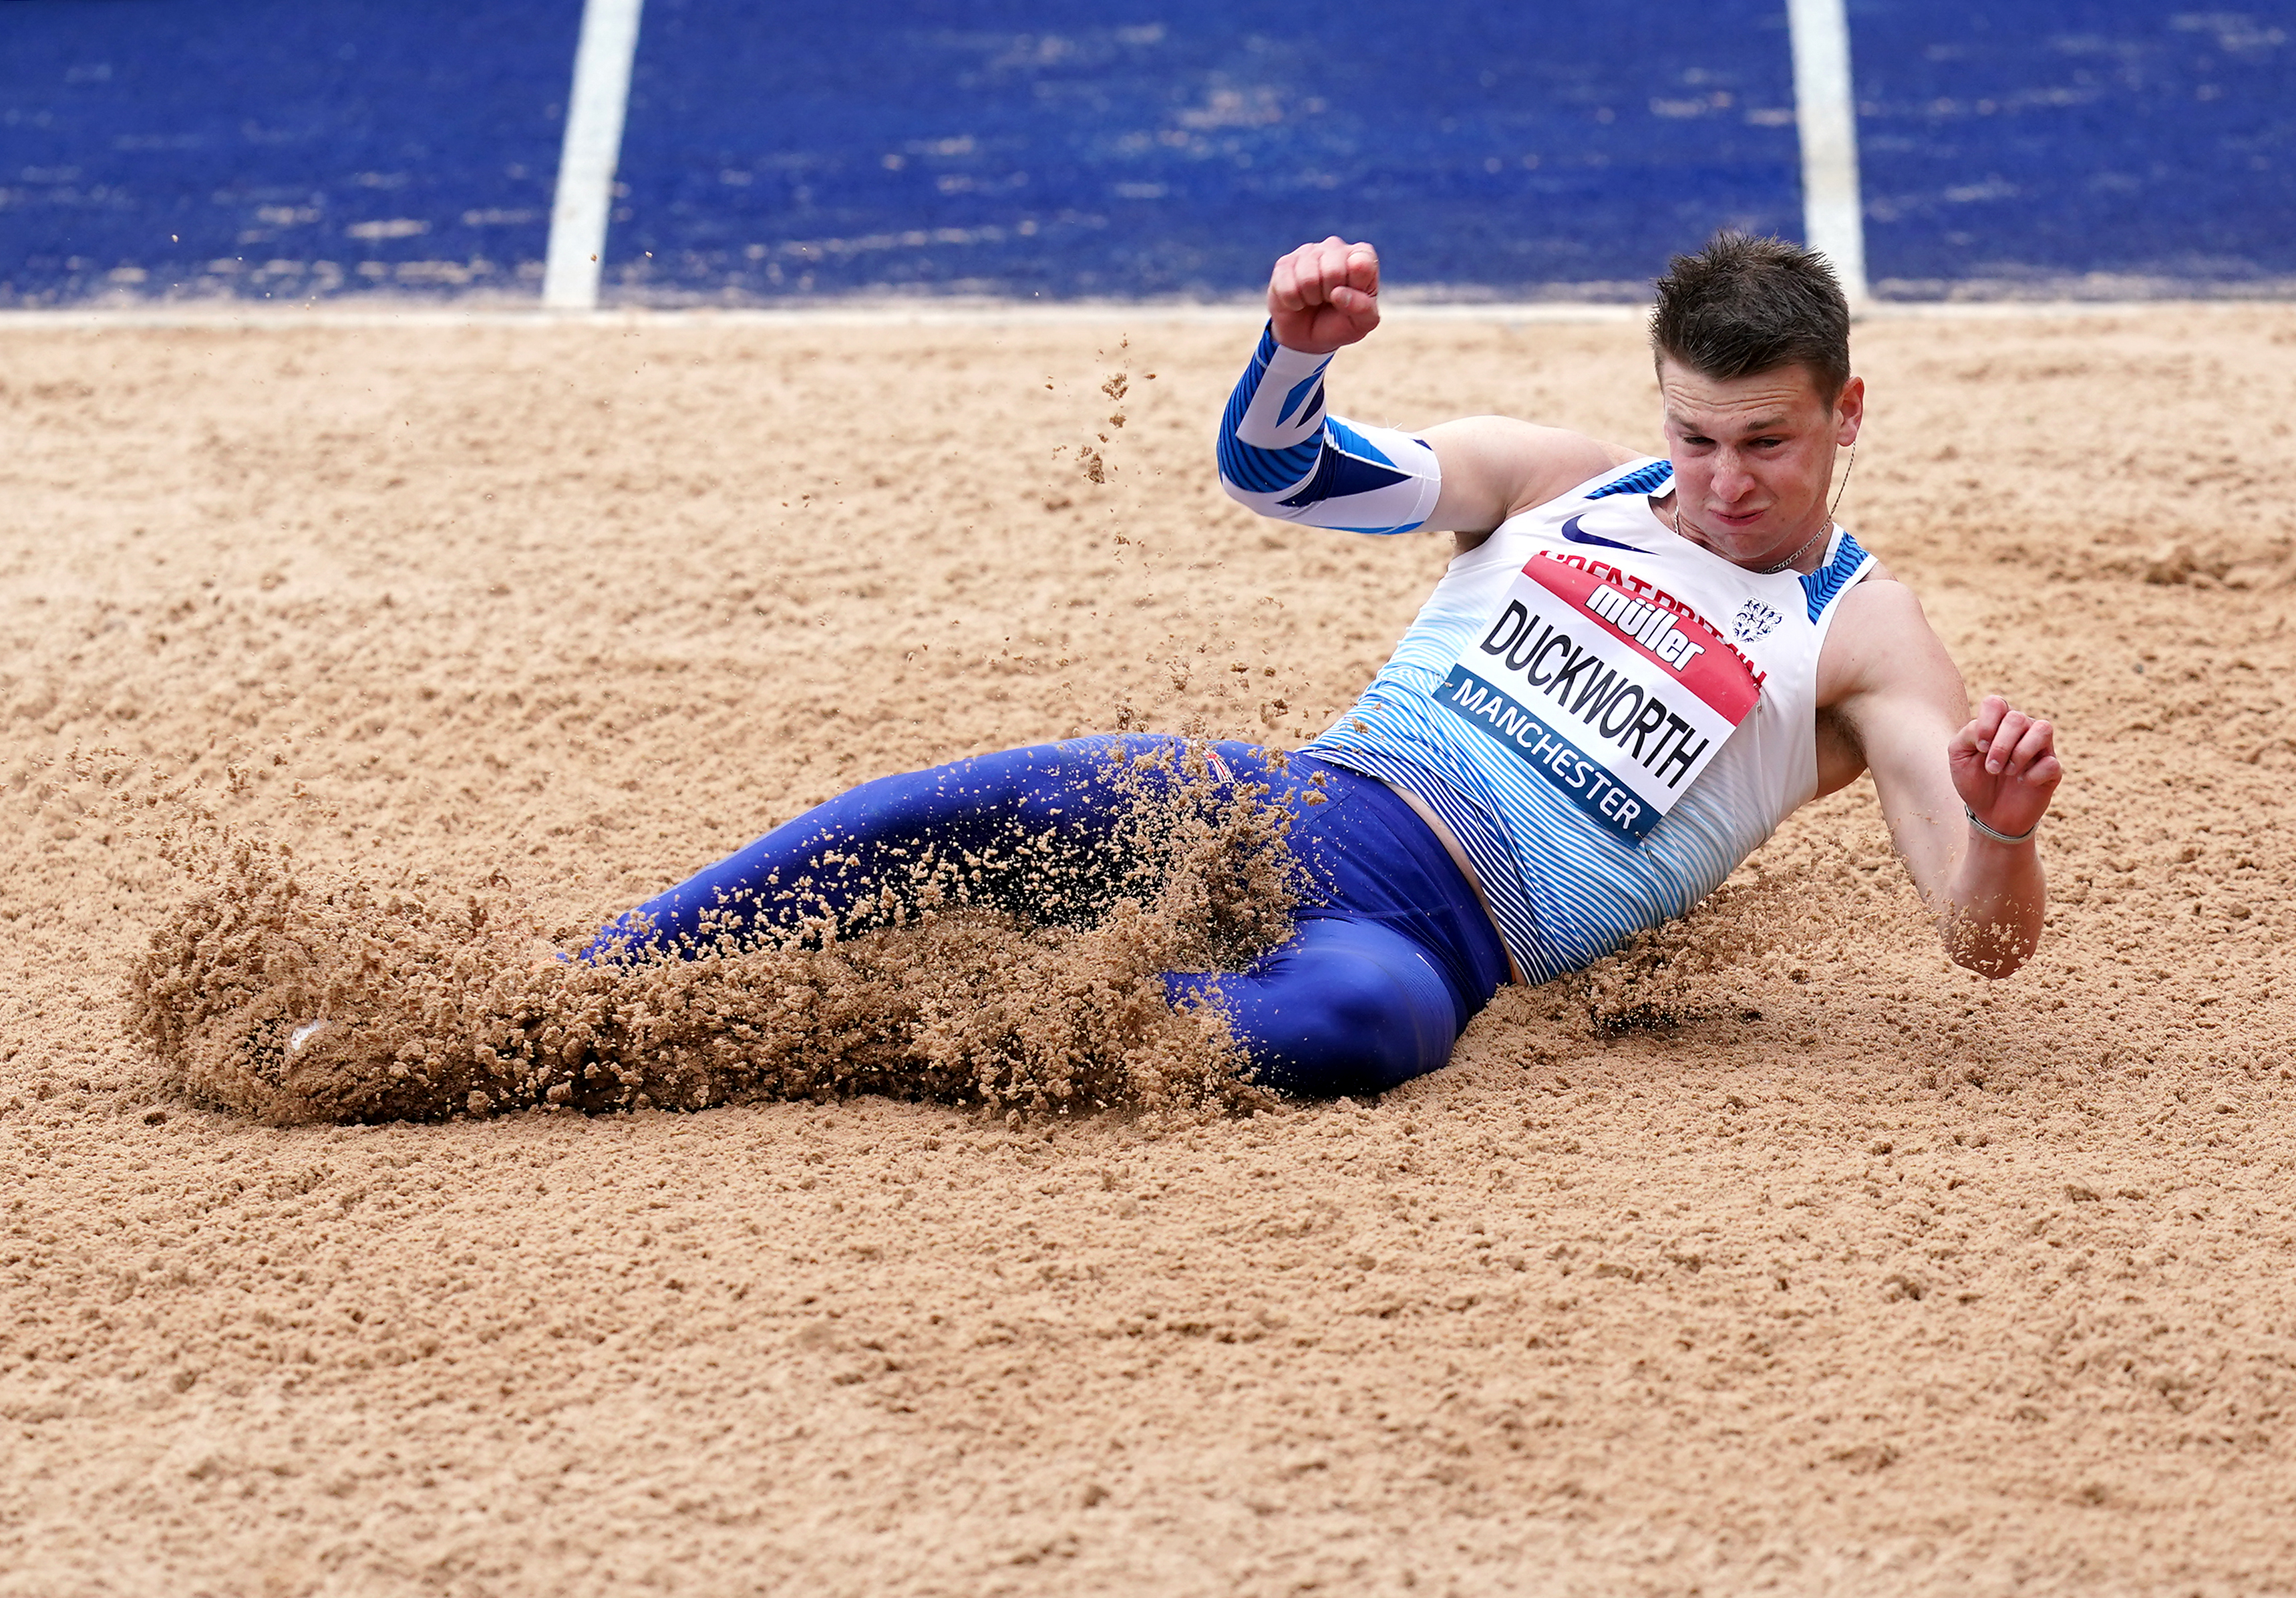 <p>Tim Duckworth during the Long Jump in the decathlon during day one of the Muller British Athletics Championships at Manchester Regional Arena. Picture date: Friday June 25, 2021.</p>